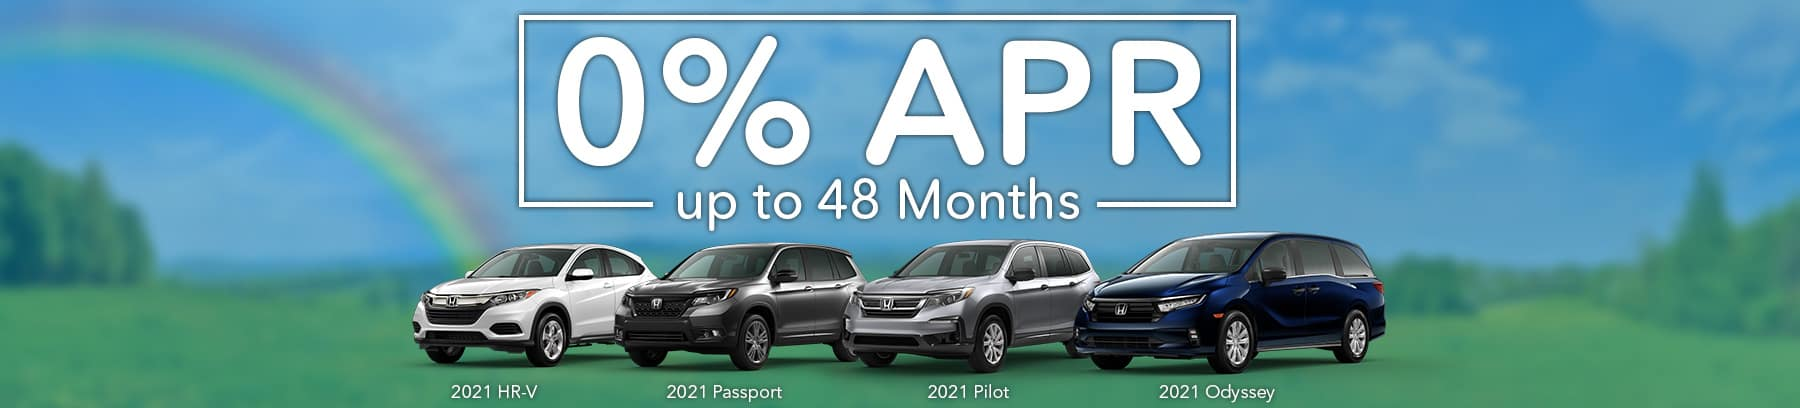 Honda - Spring 0 % APR for up to 48 Months